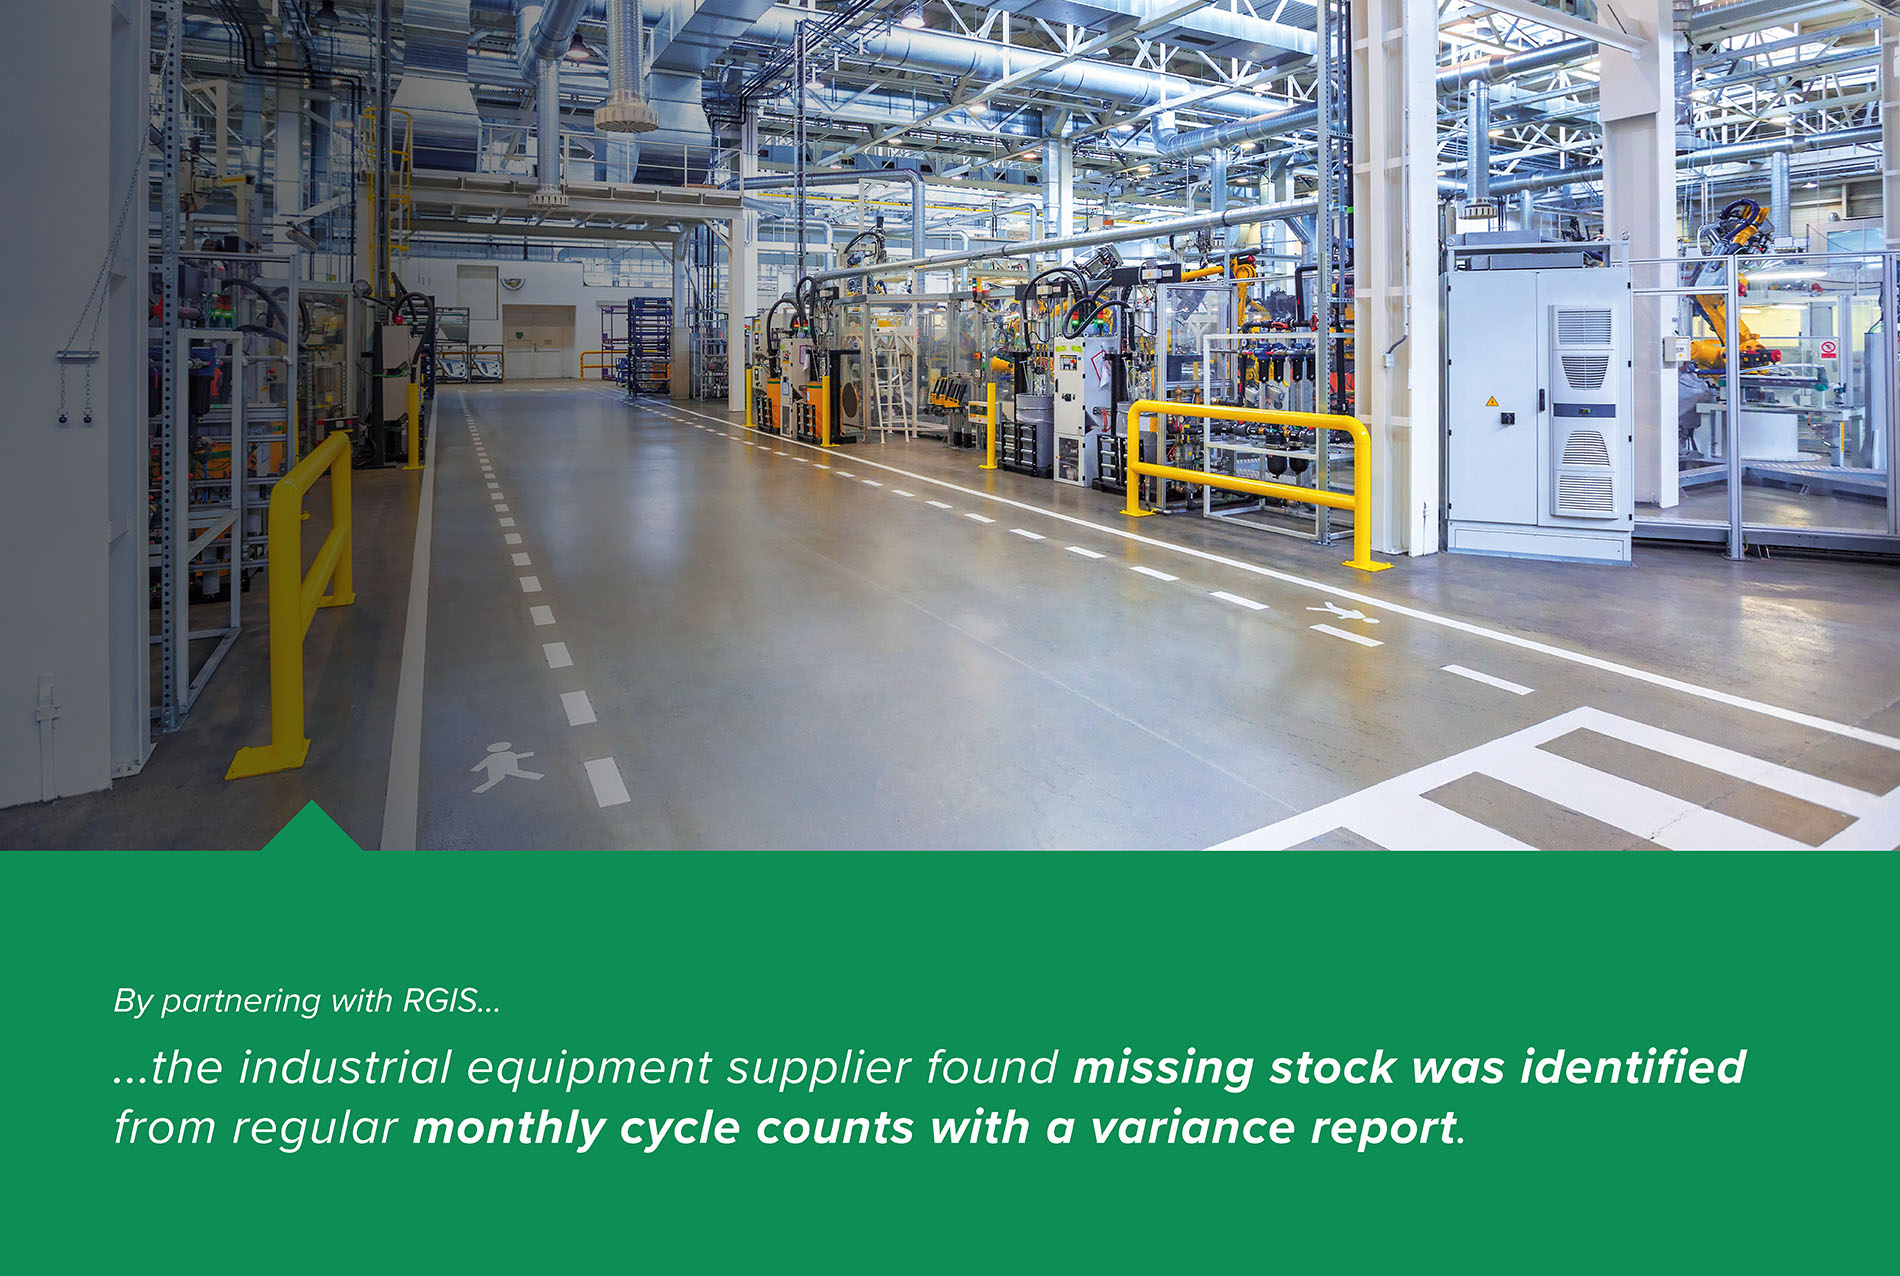 Distribution Center Monthly Cycle Counts